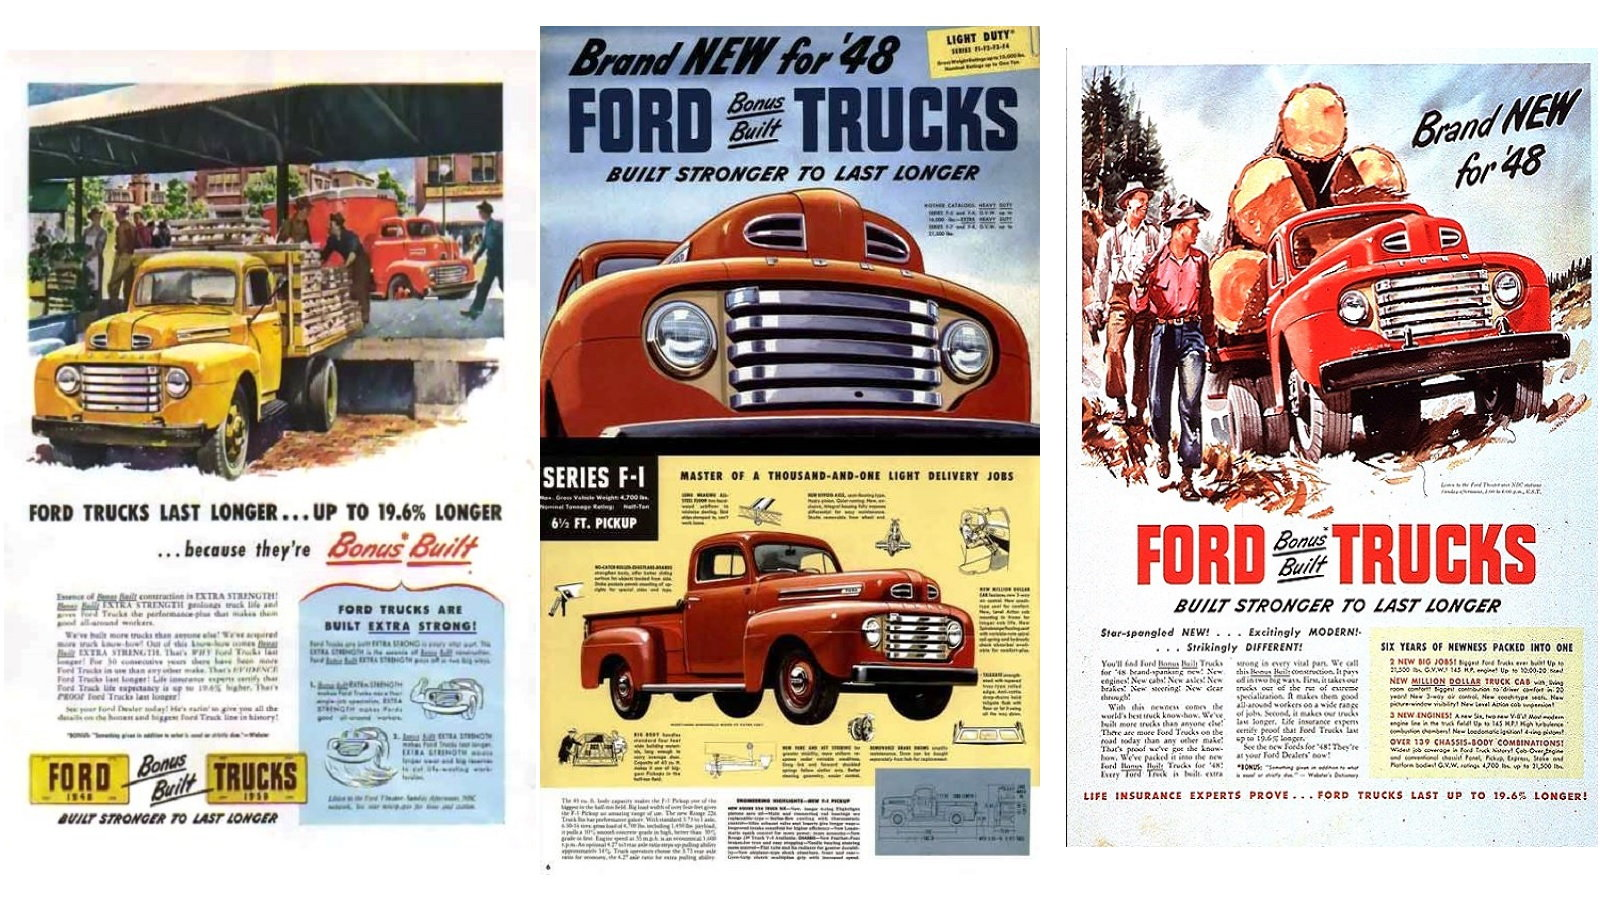 1948 Ford Series F